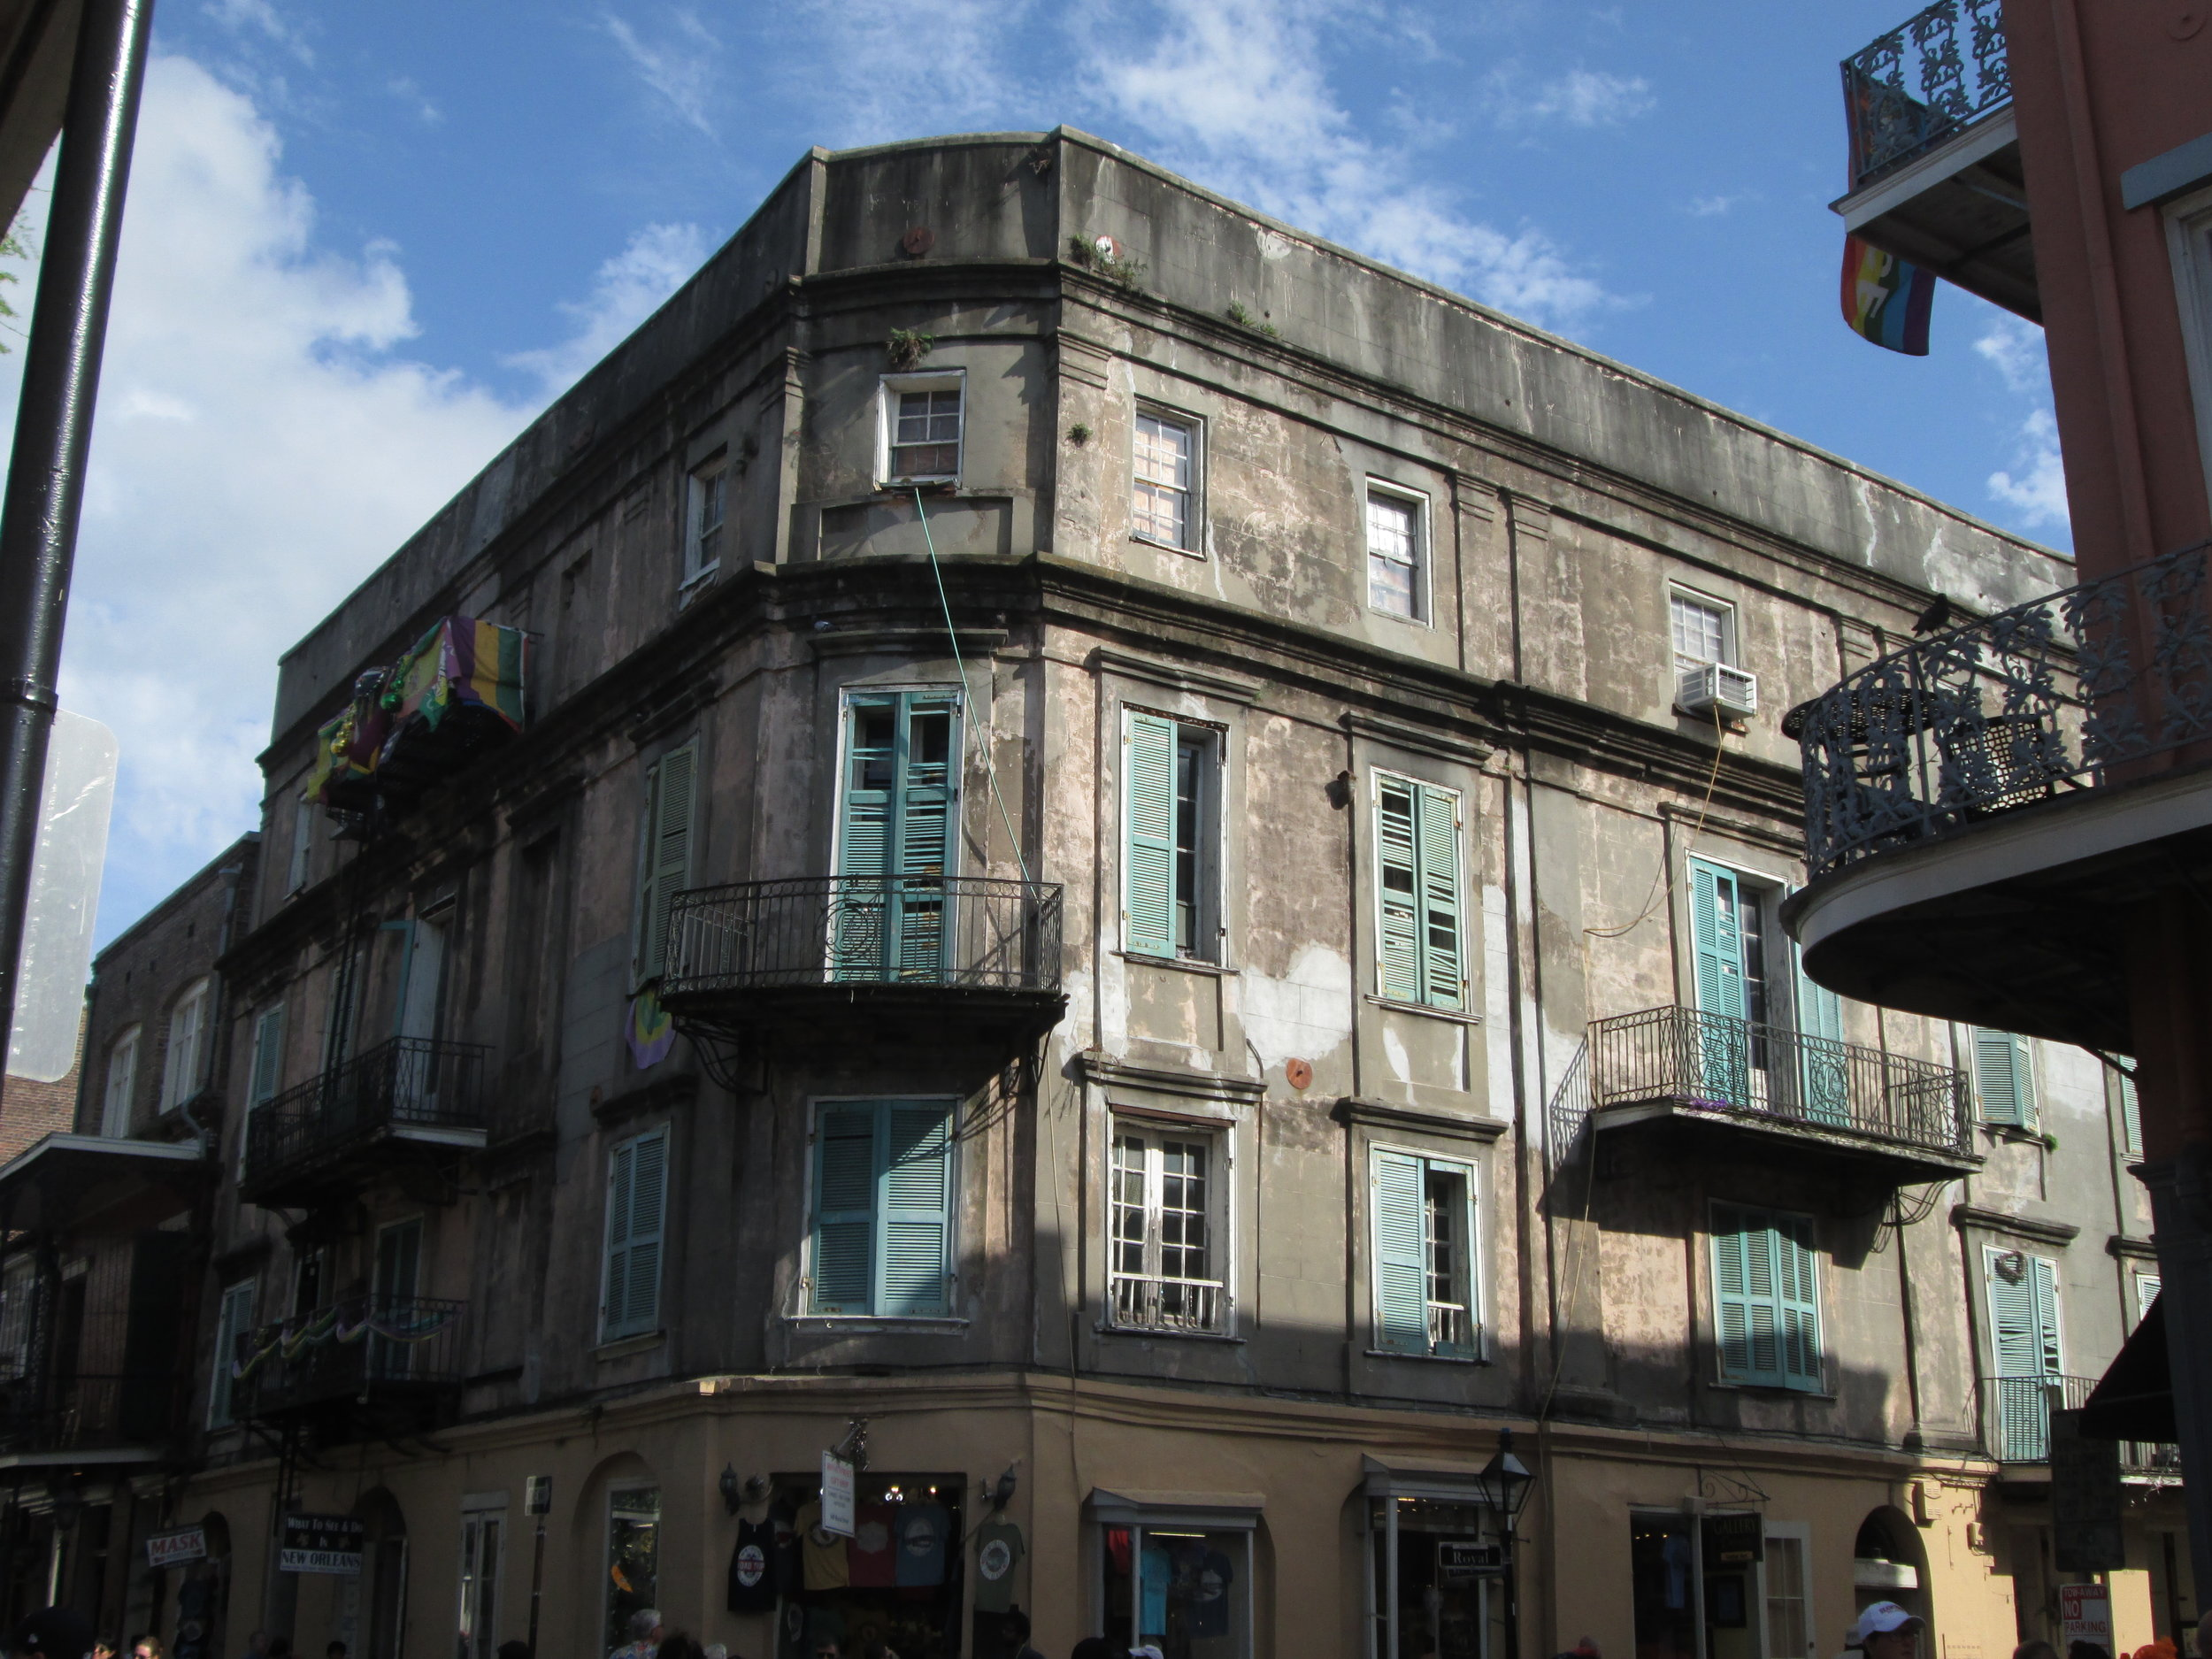 This decaying mansion looms above the modern streets in the French Quarter.